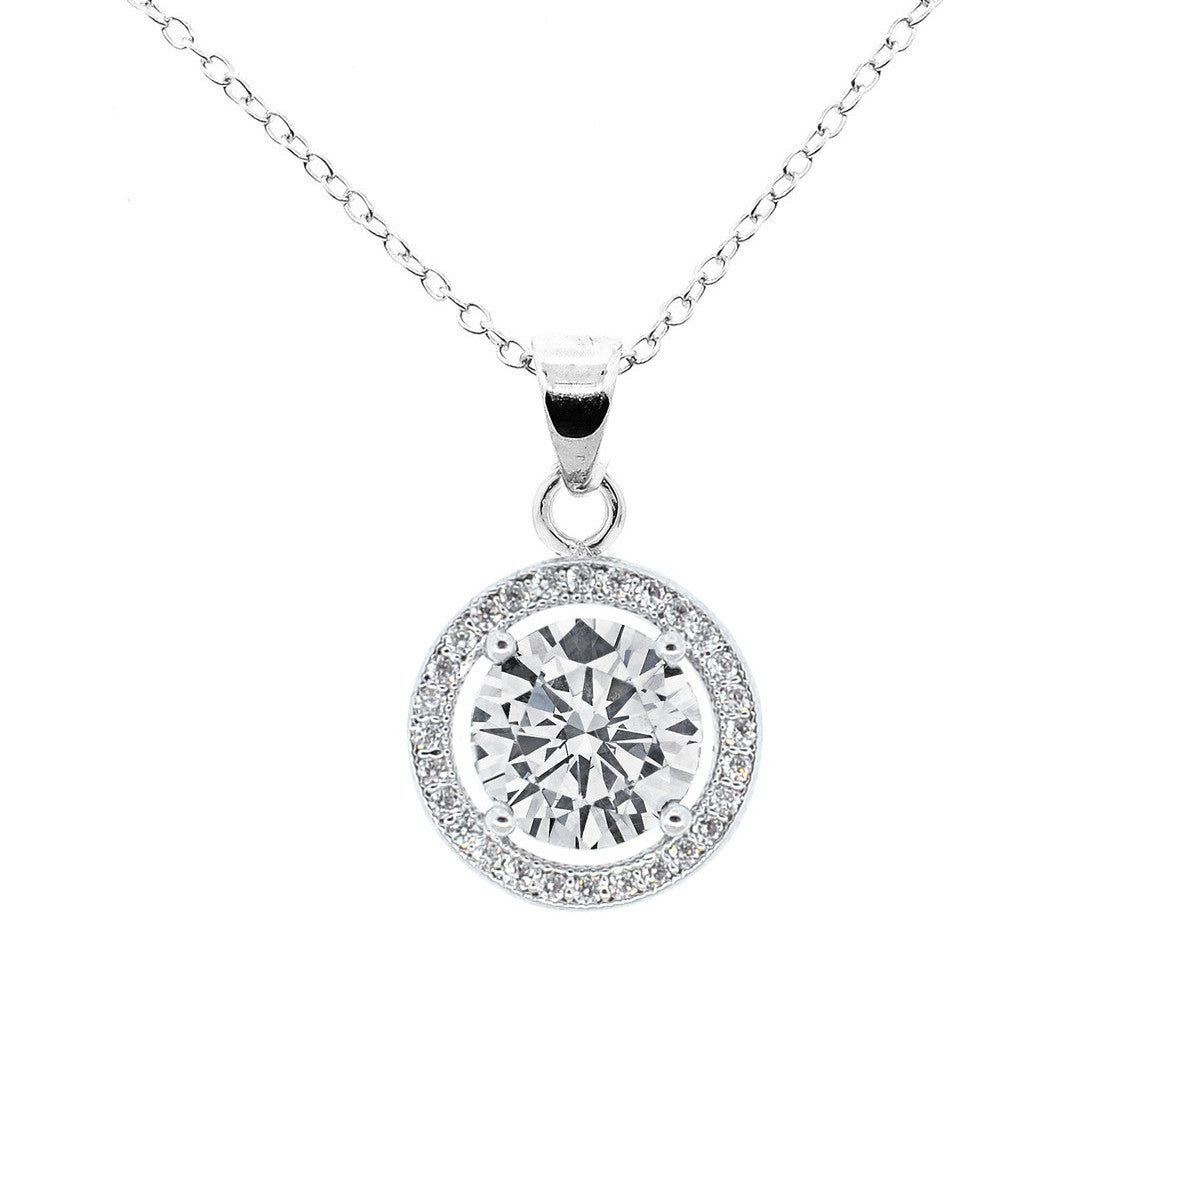 Blake 18k White Gold Plated Pendant Necklace Cate Chloe Jewelry